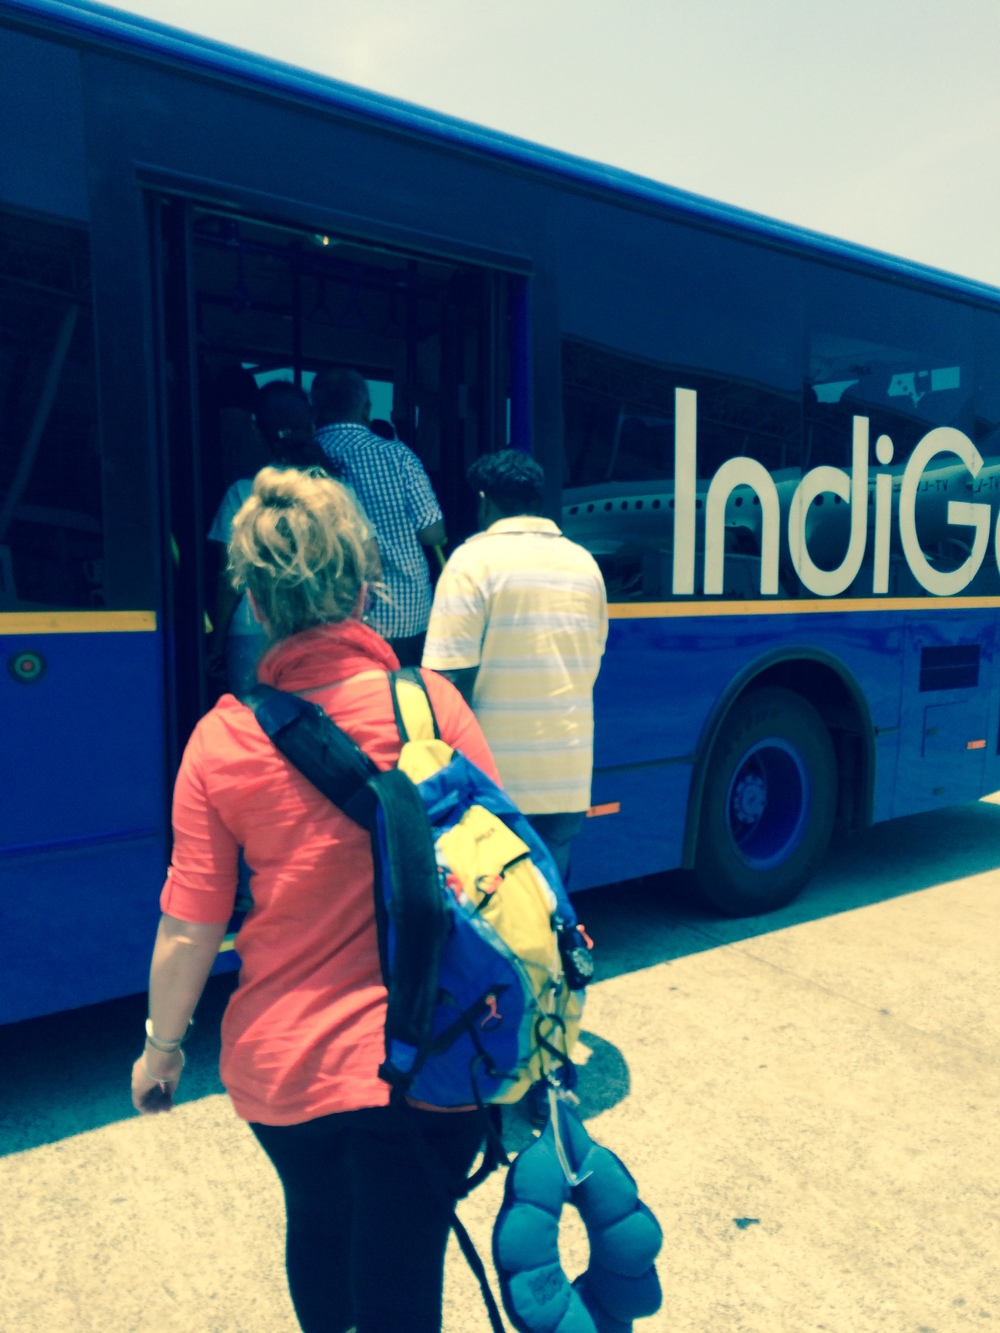 Boarding a bus to our terminal at Chennai airport